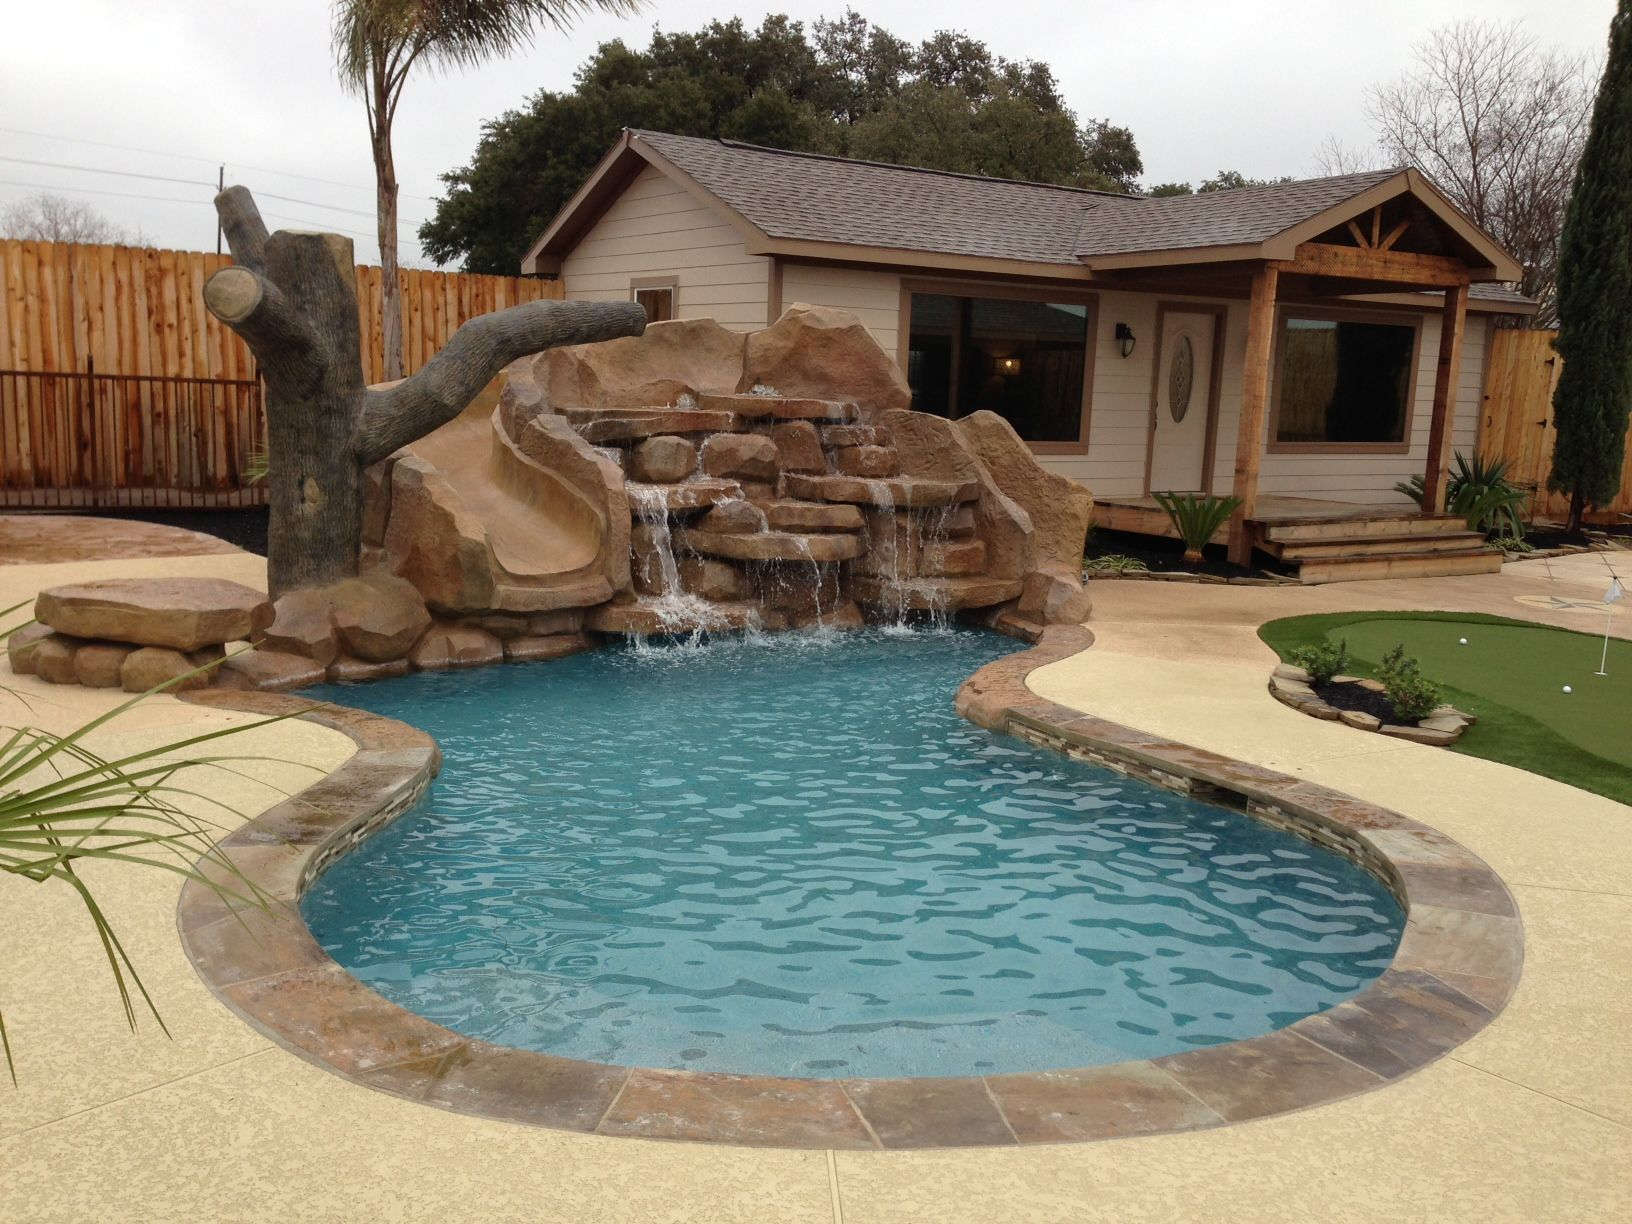 pool designs for small backyards this is can be one of the best backyard pool design - Pool Designs For Small Backyards